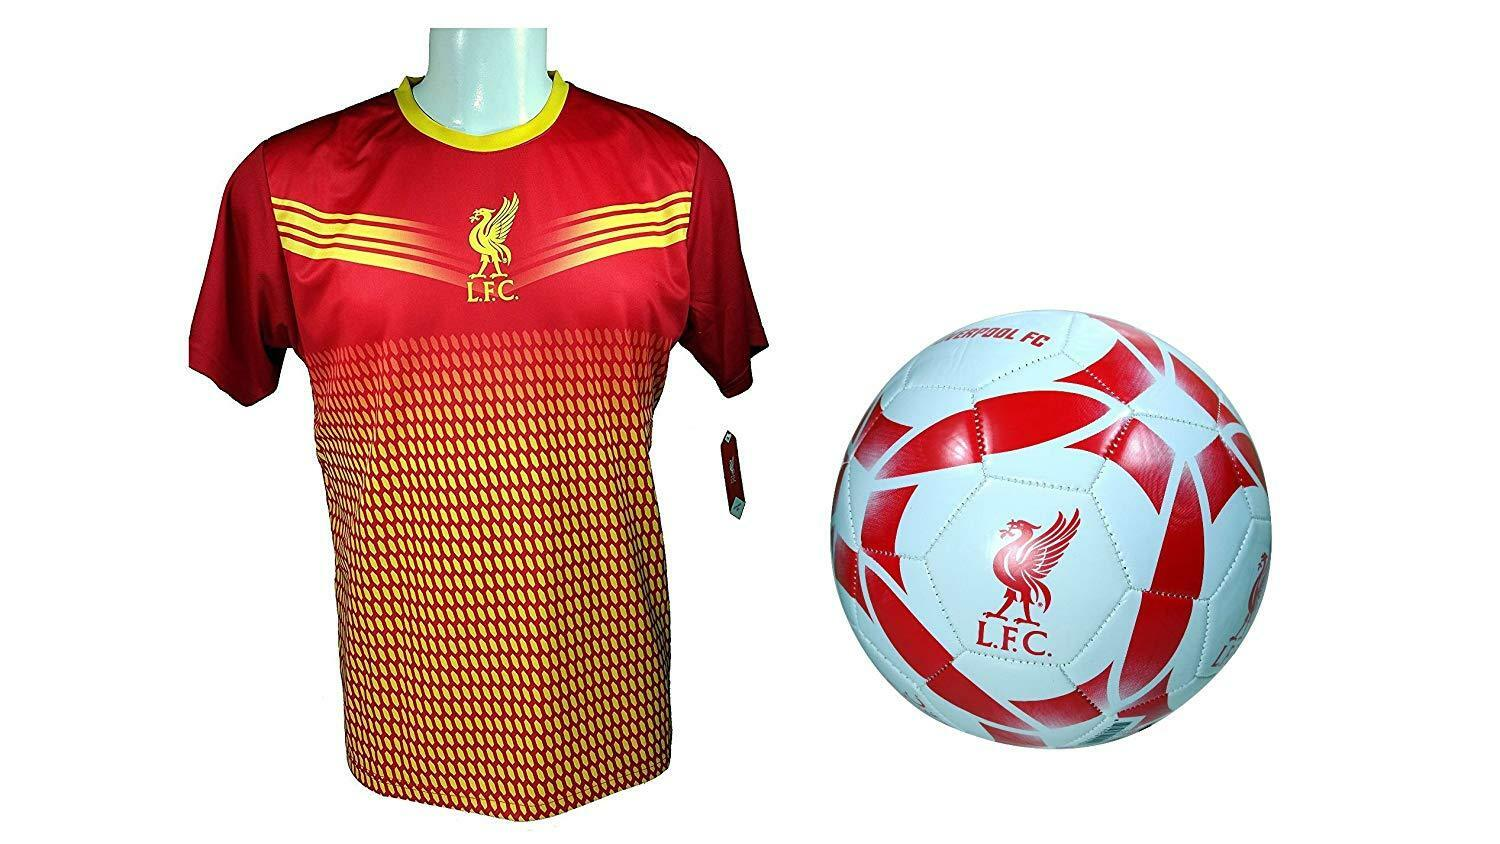 3b0f5232f Liverpool F.C. Soccer Soccer Jersey   Size 5 Ball Combo -28 S Official  Training nuoaom4768-Men